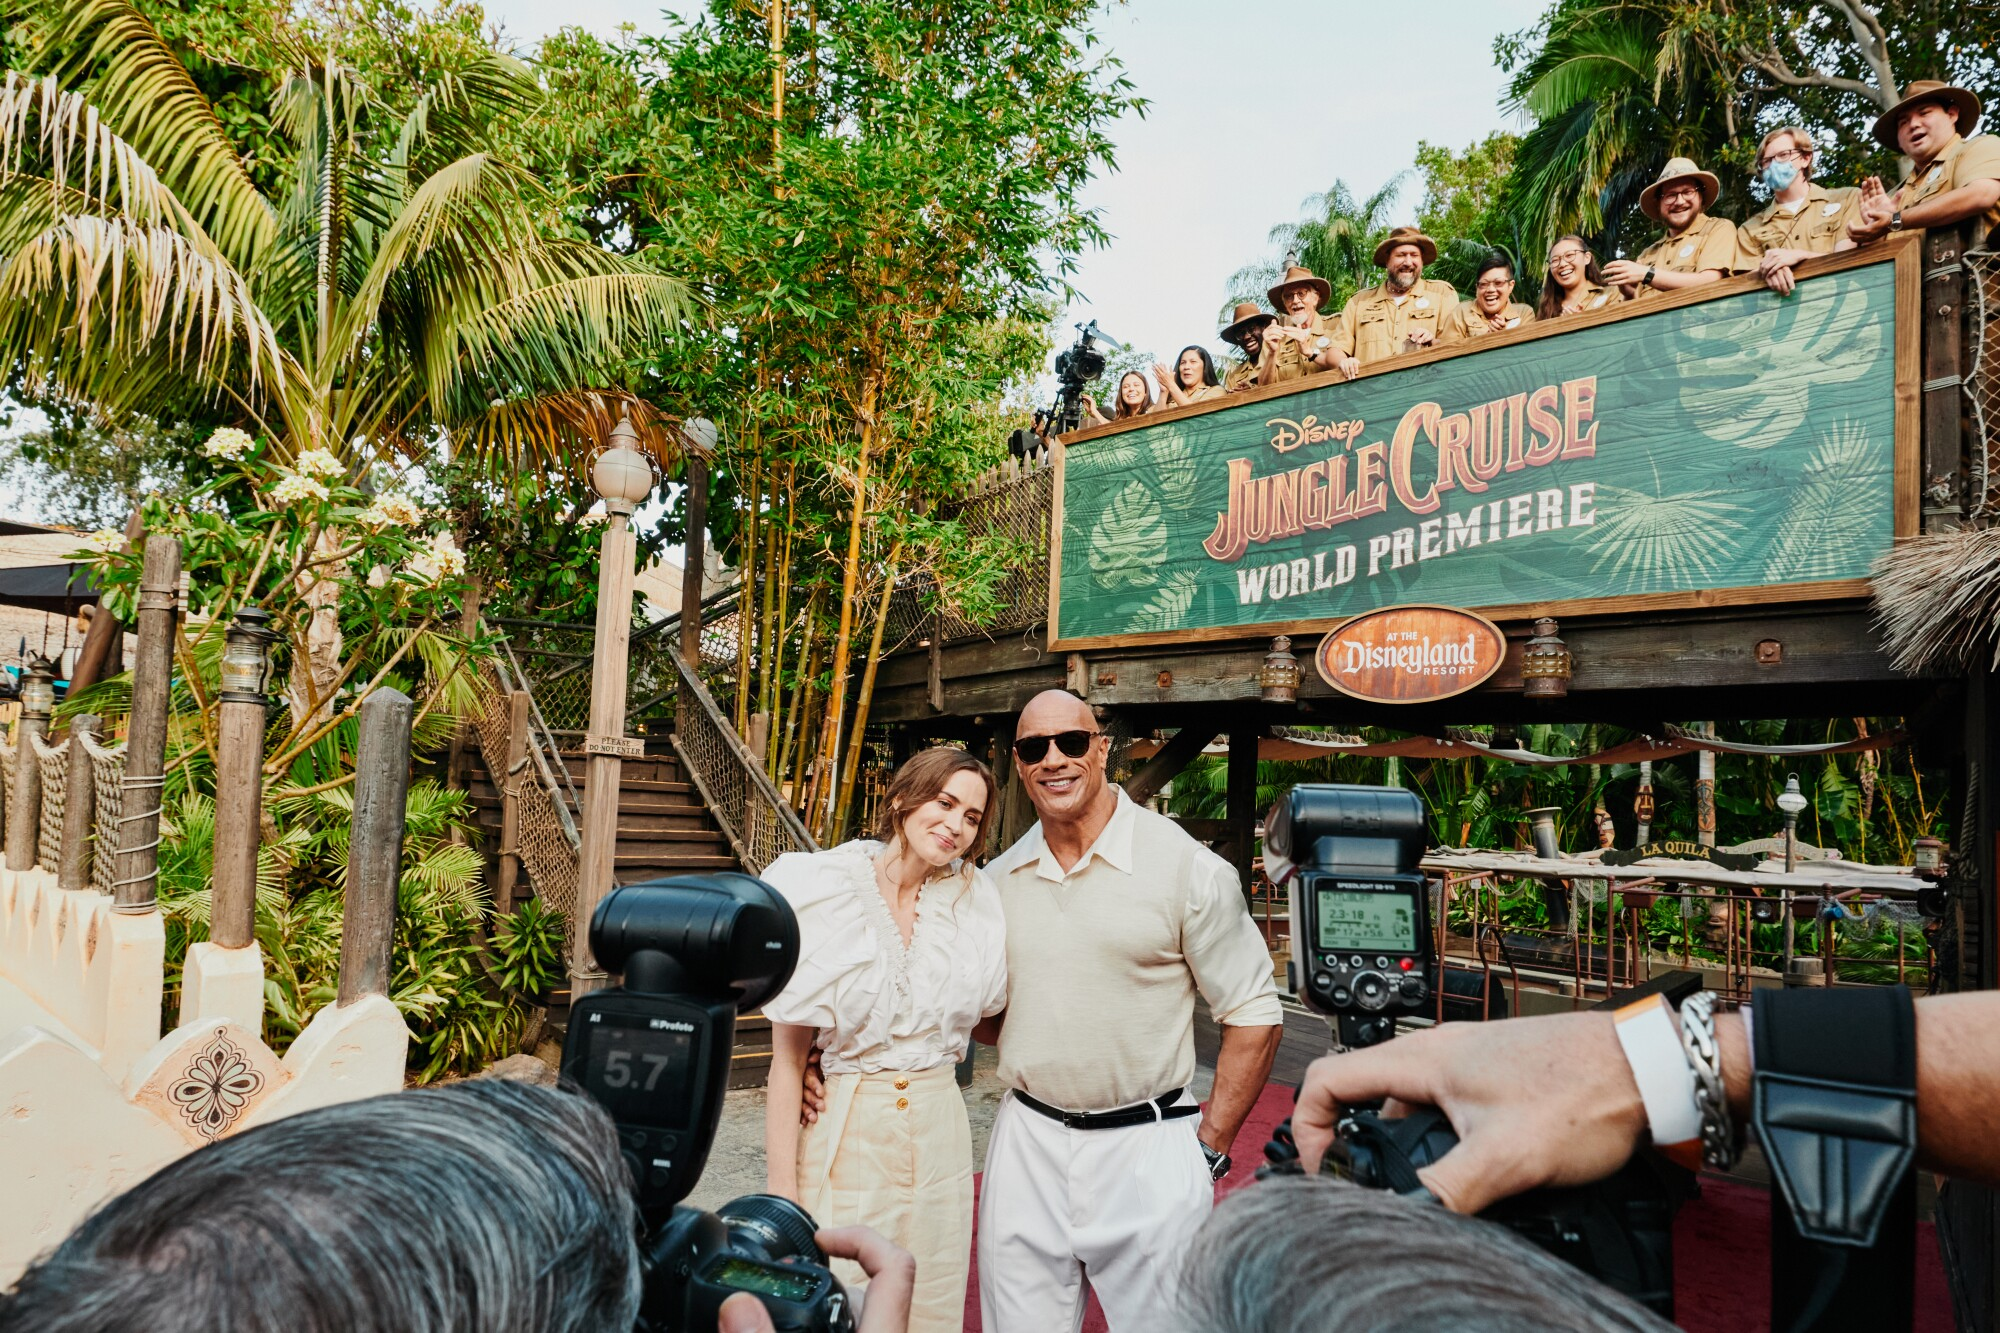 """Photographers take pictures of a woman, left, and man under a """"Jungle Cruise World Premiere"""" sign."""